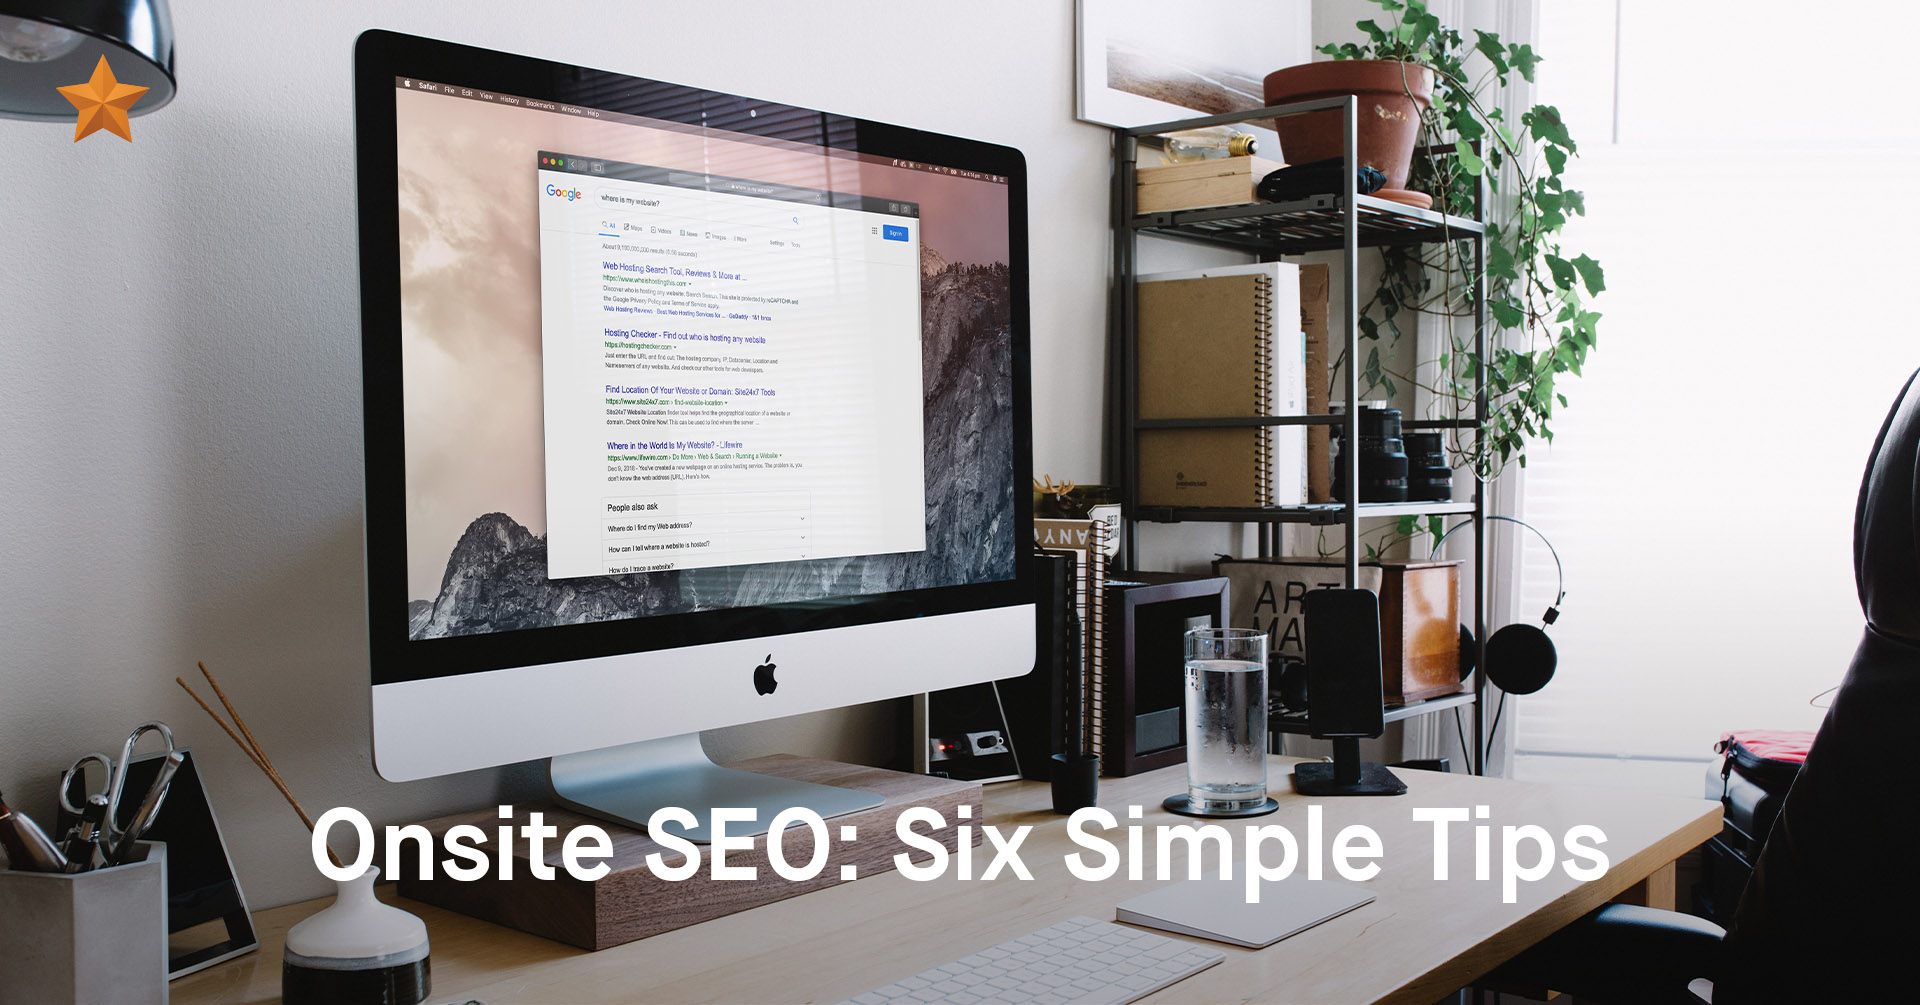 Search Engine Success: Six Simple Tips to Improve Your Onsite SEO